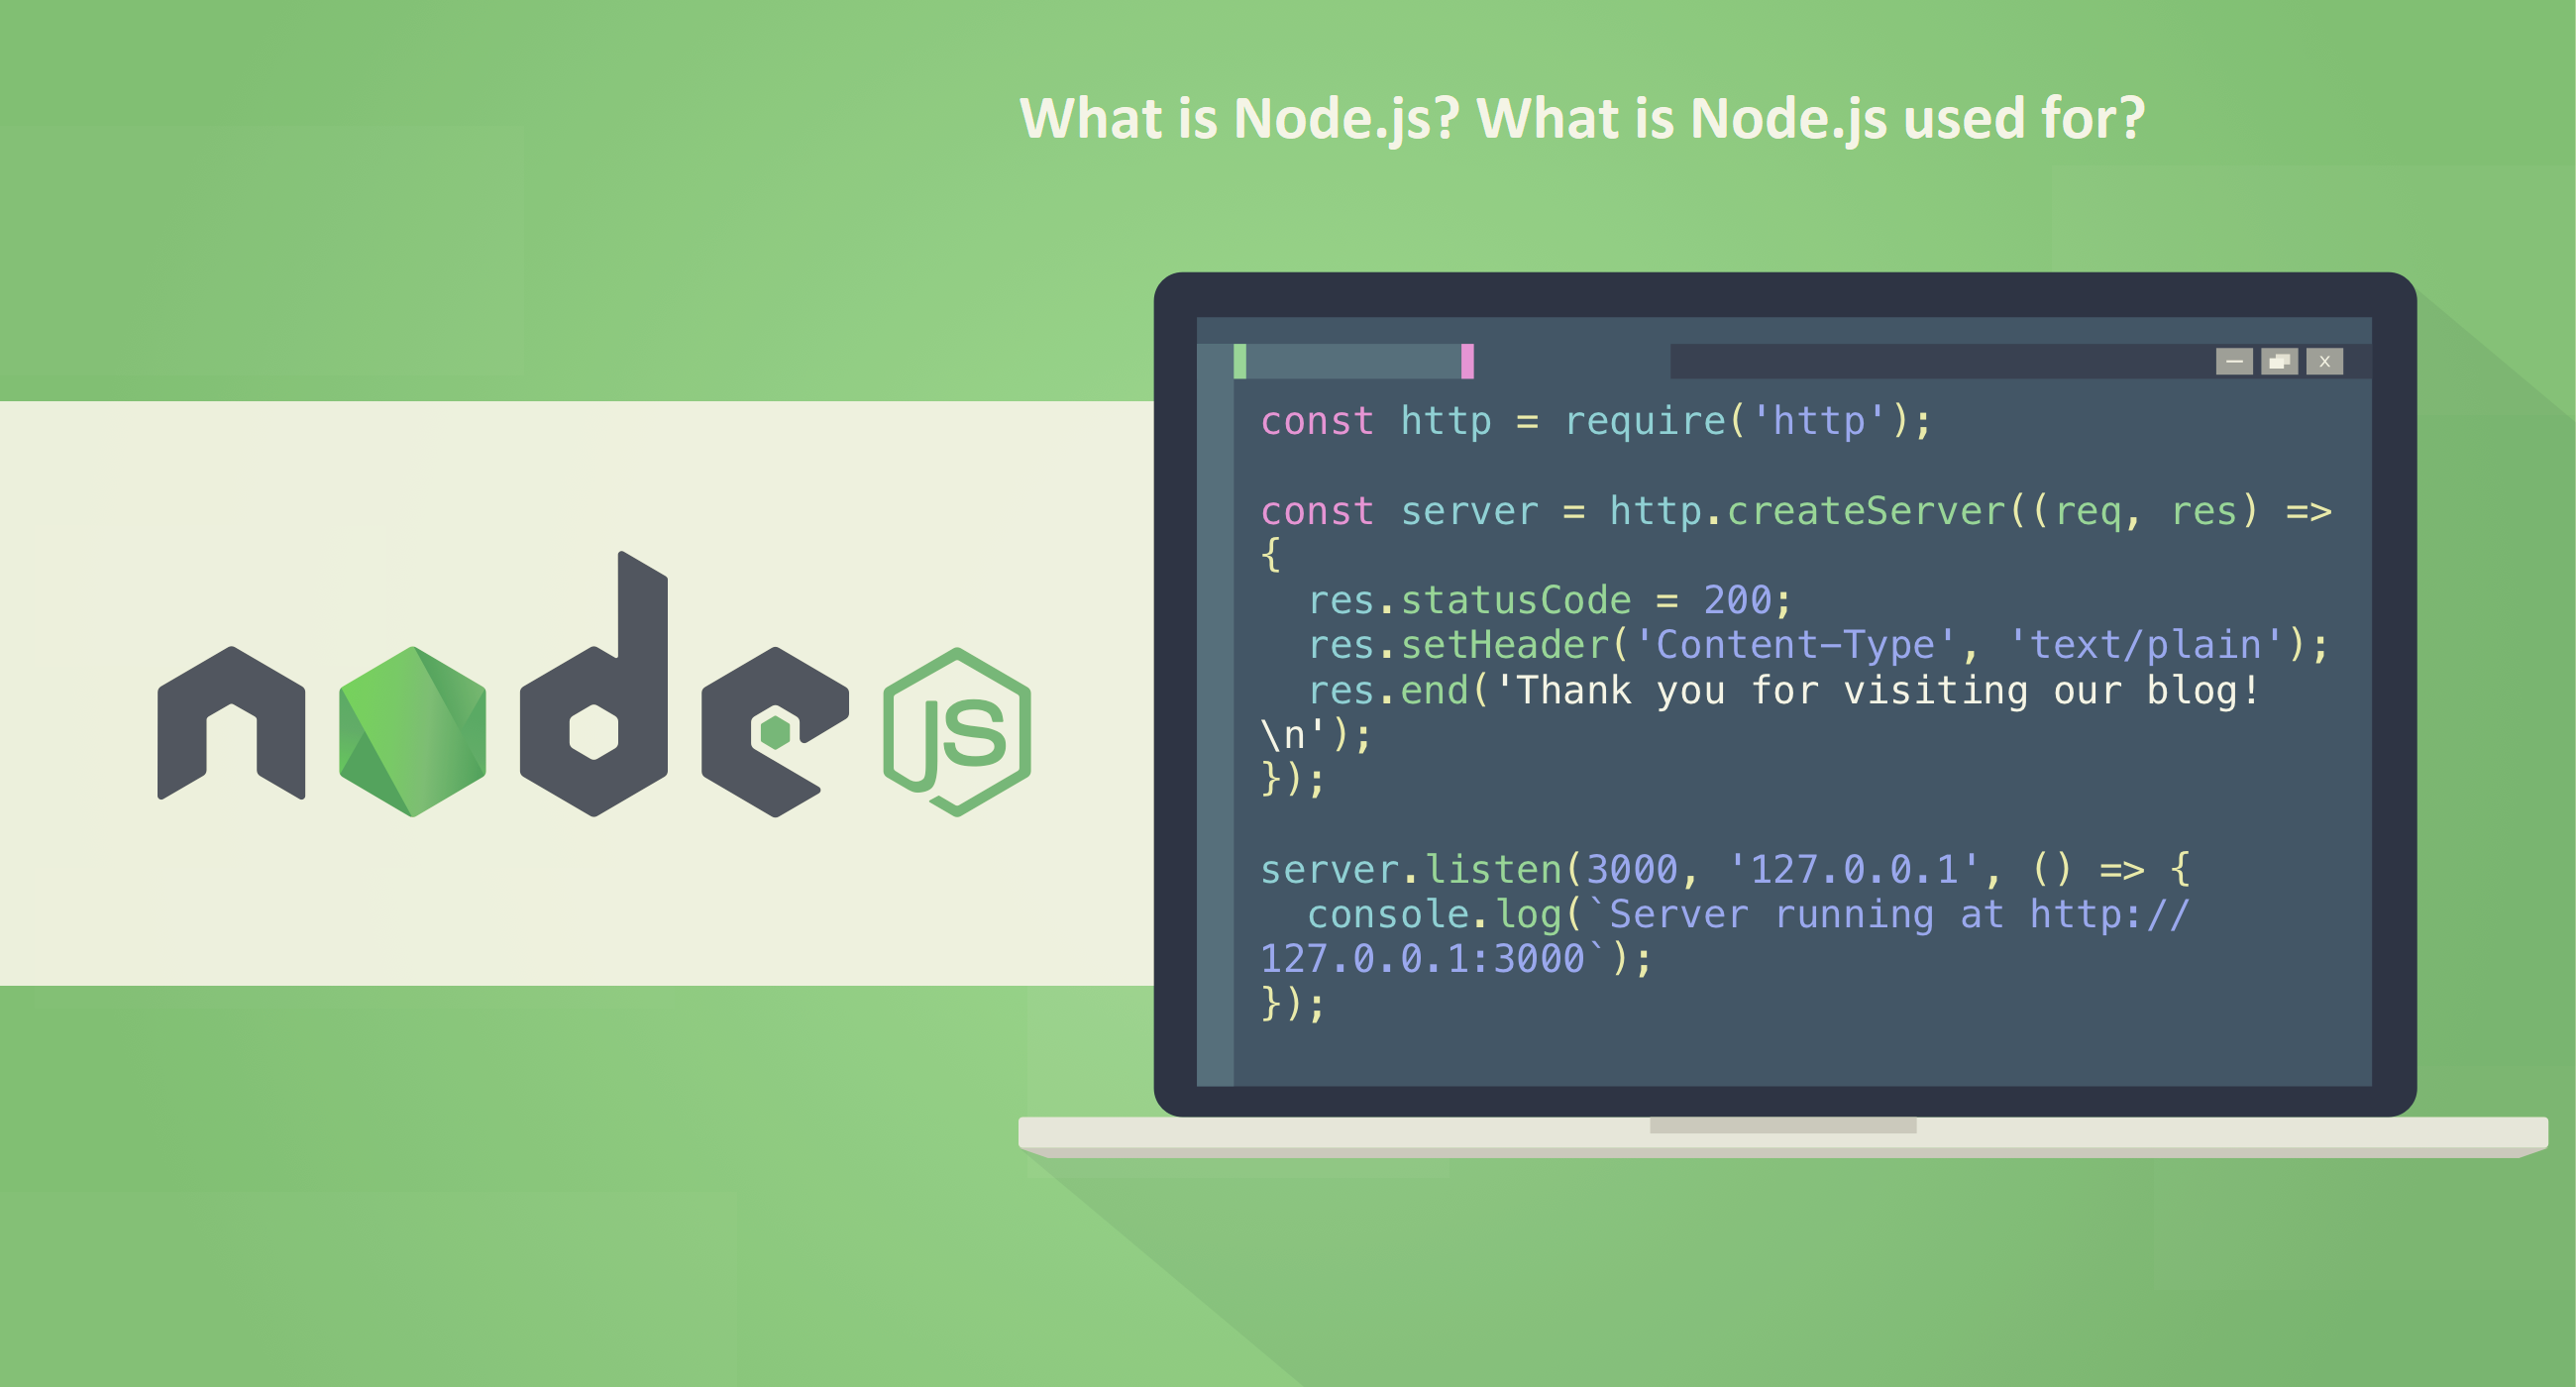 What is Node.js? What is Node.js used for?